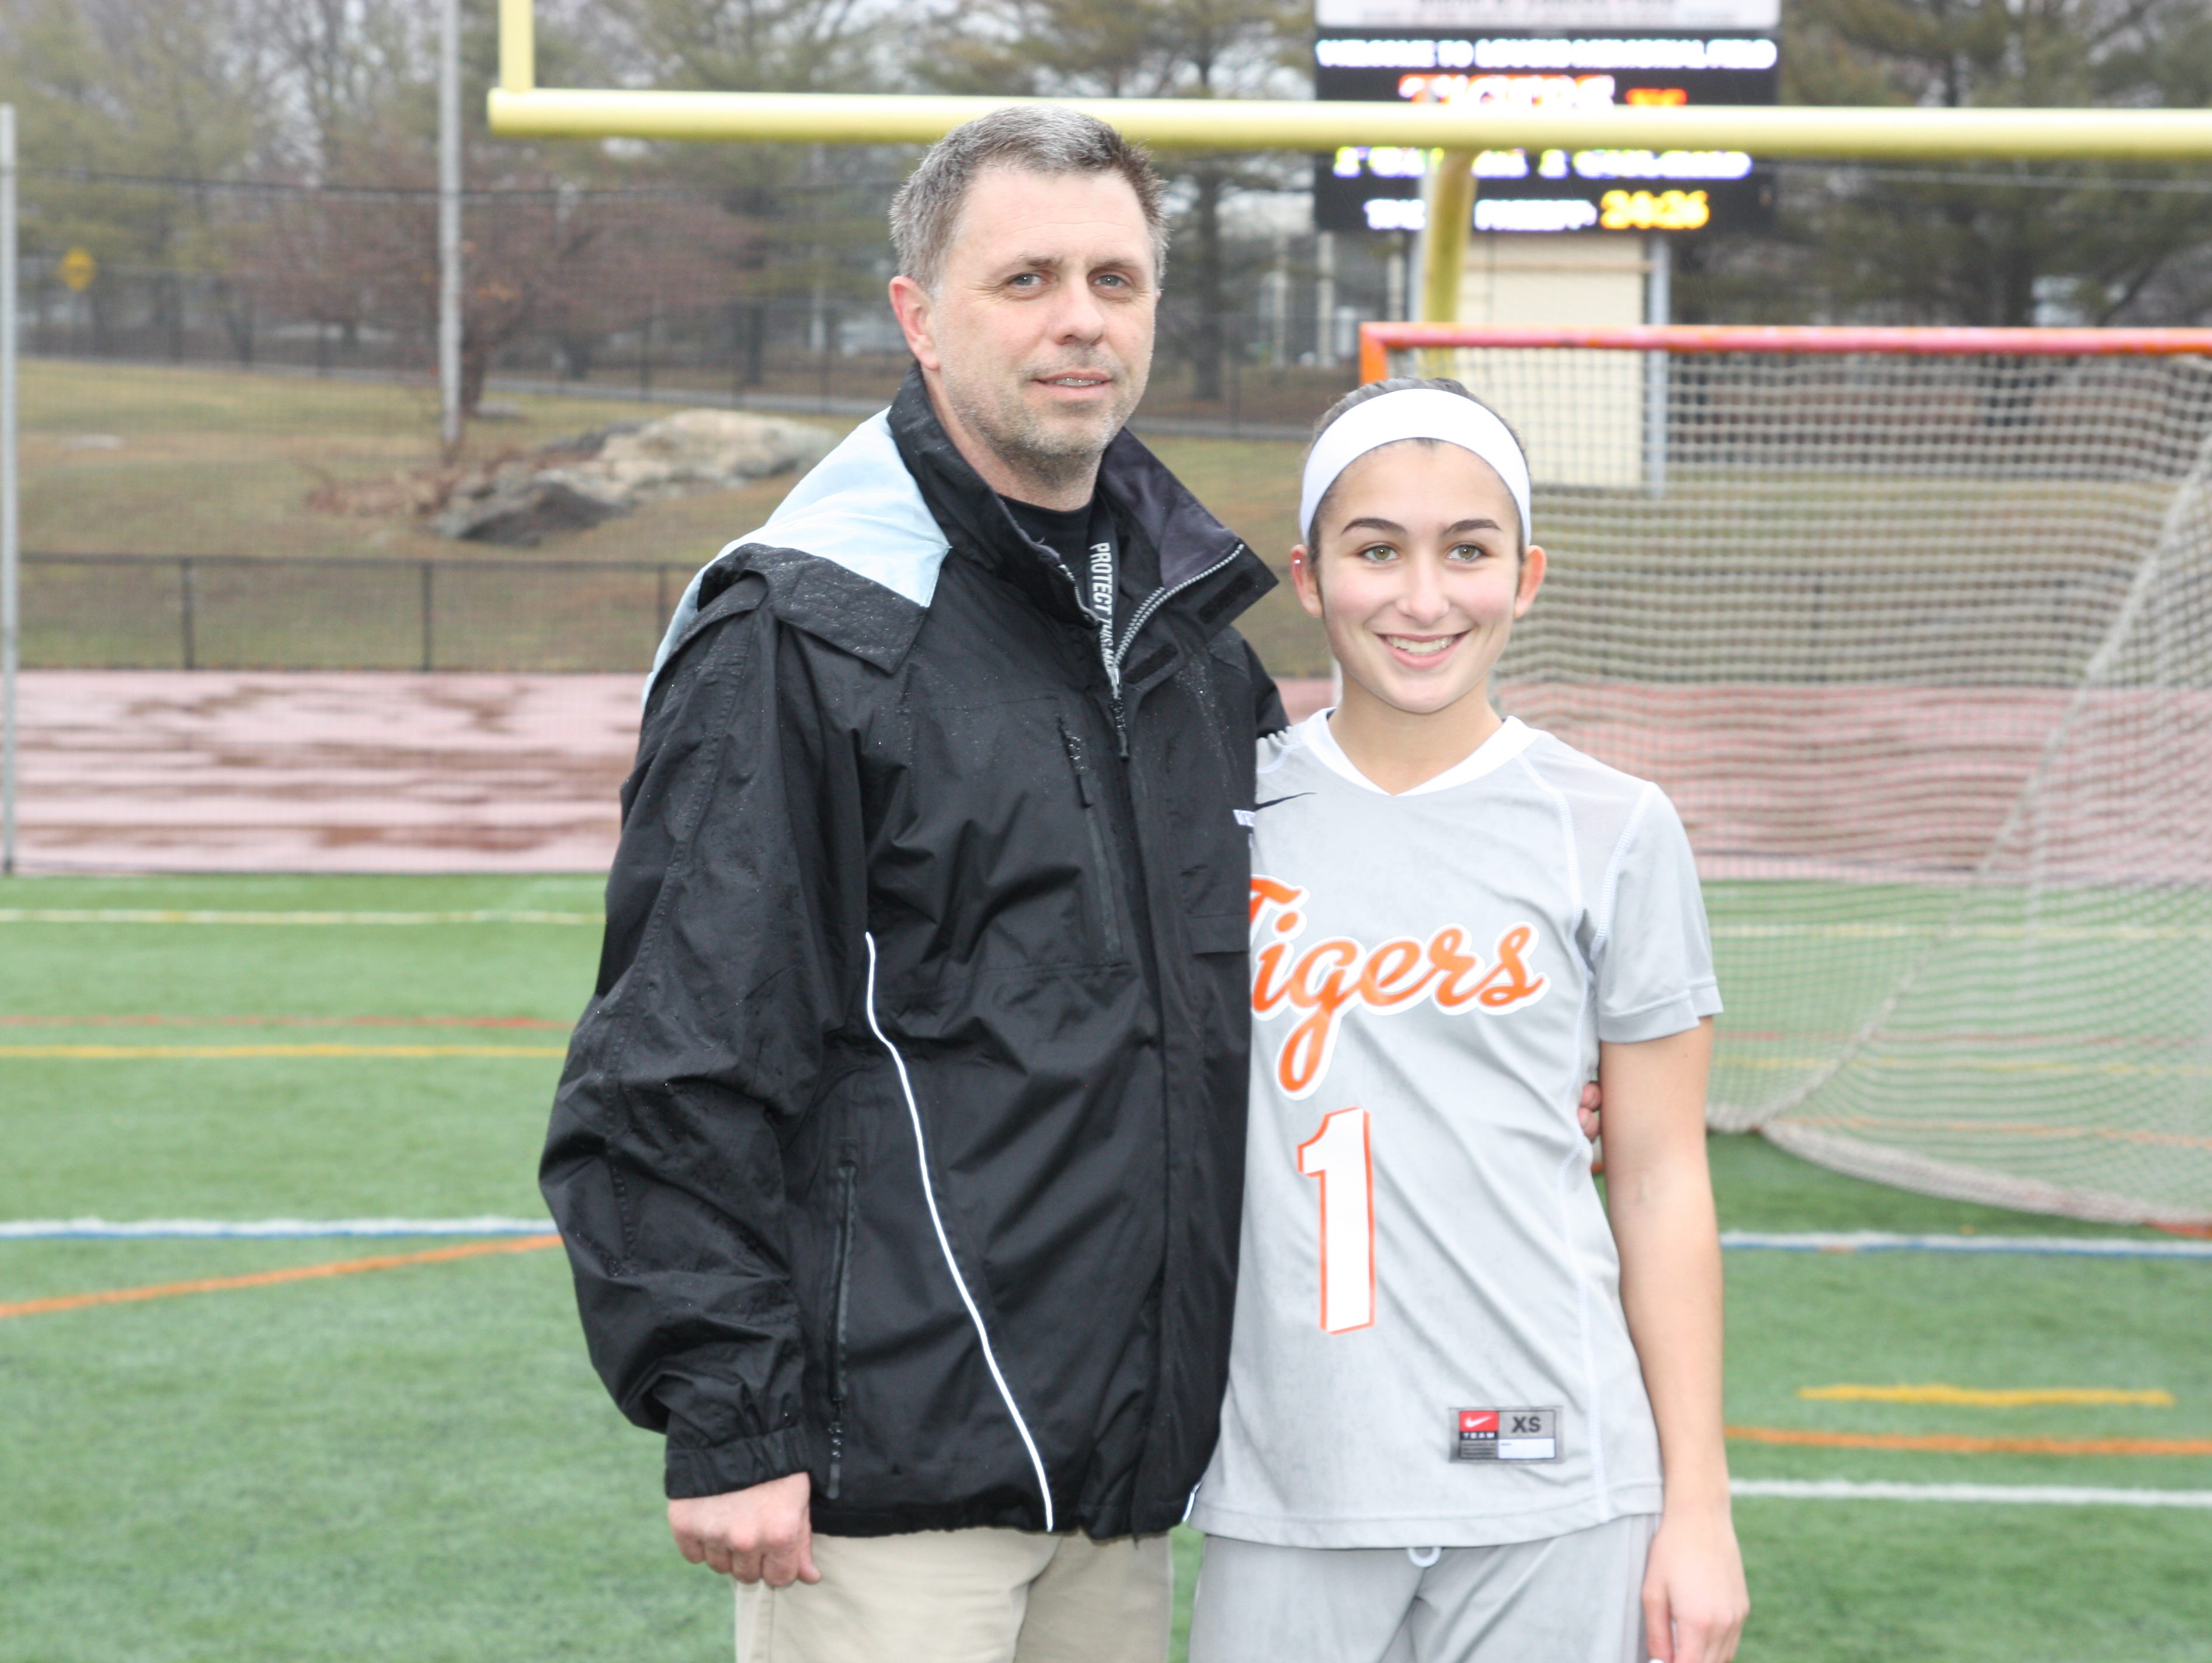 White Plains girls lacrosse head coach Mike Leone, pictured here with former varsity player Erin McGee, passed away on Thursday, April 7th, 2016. He was 49 years old.